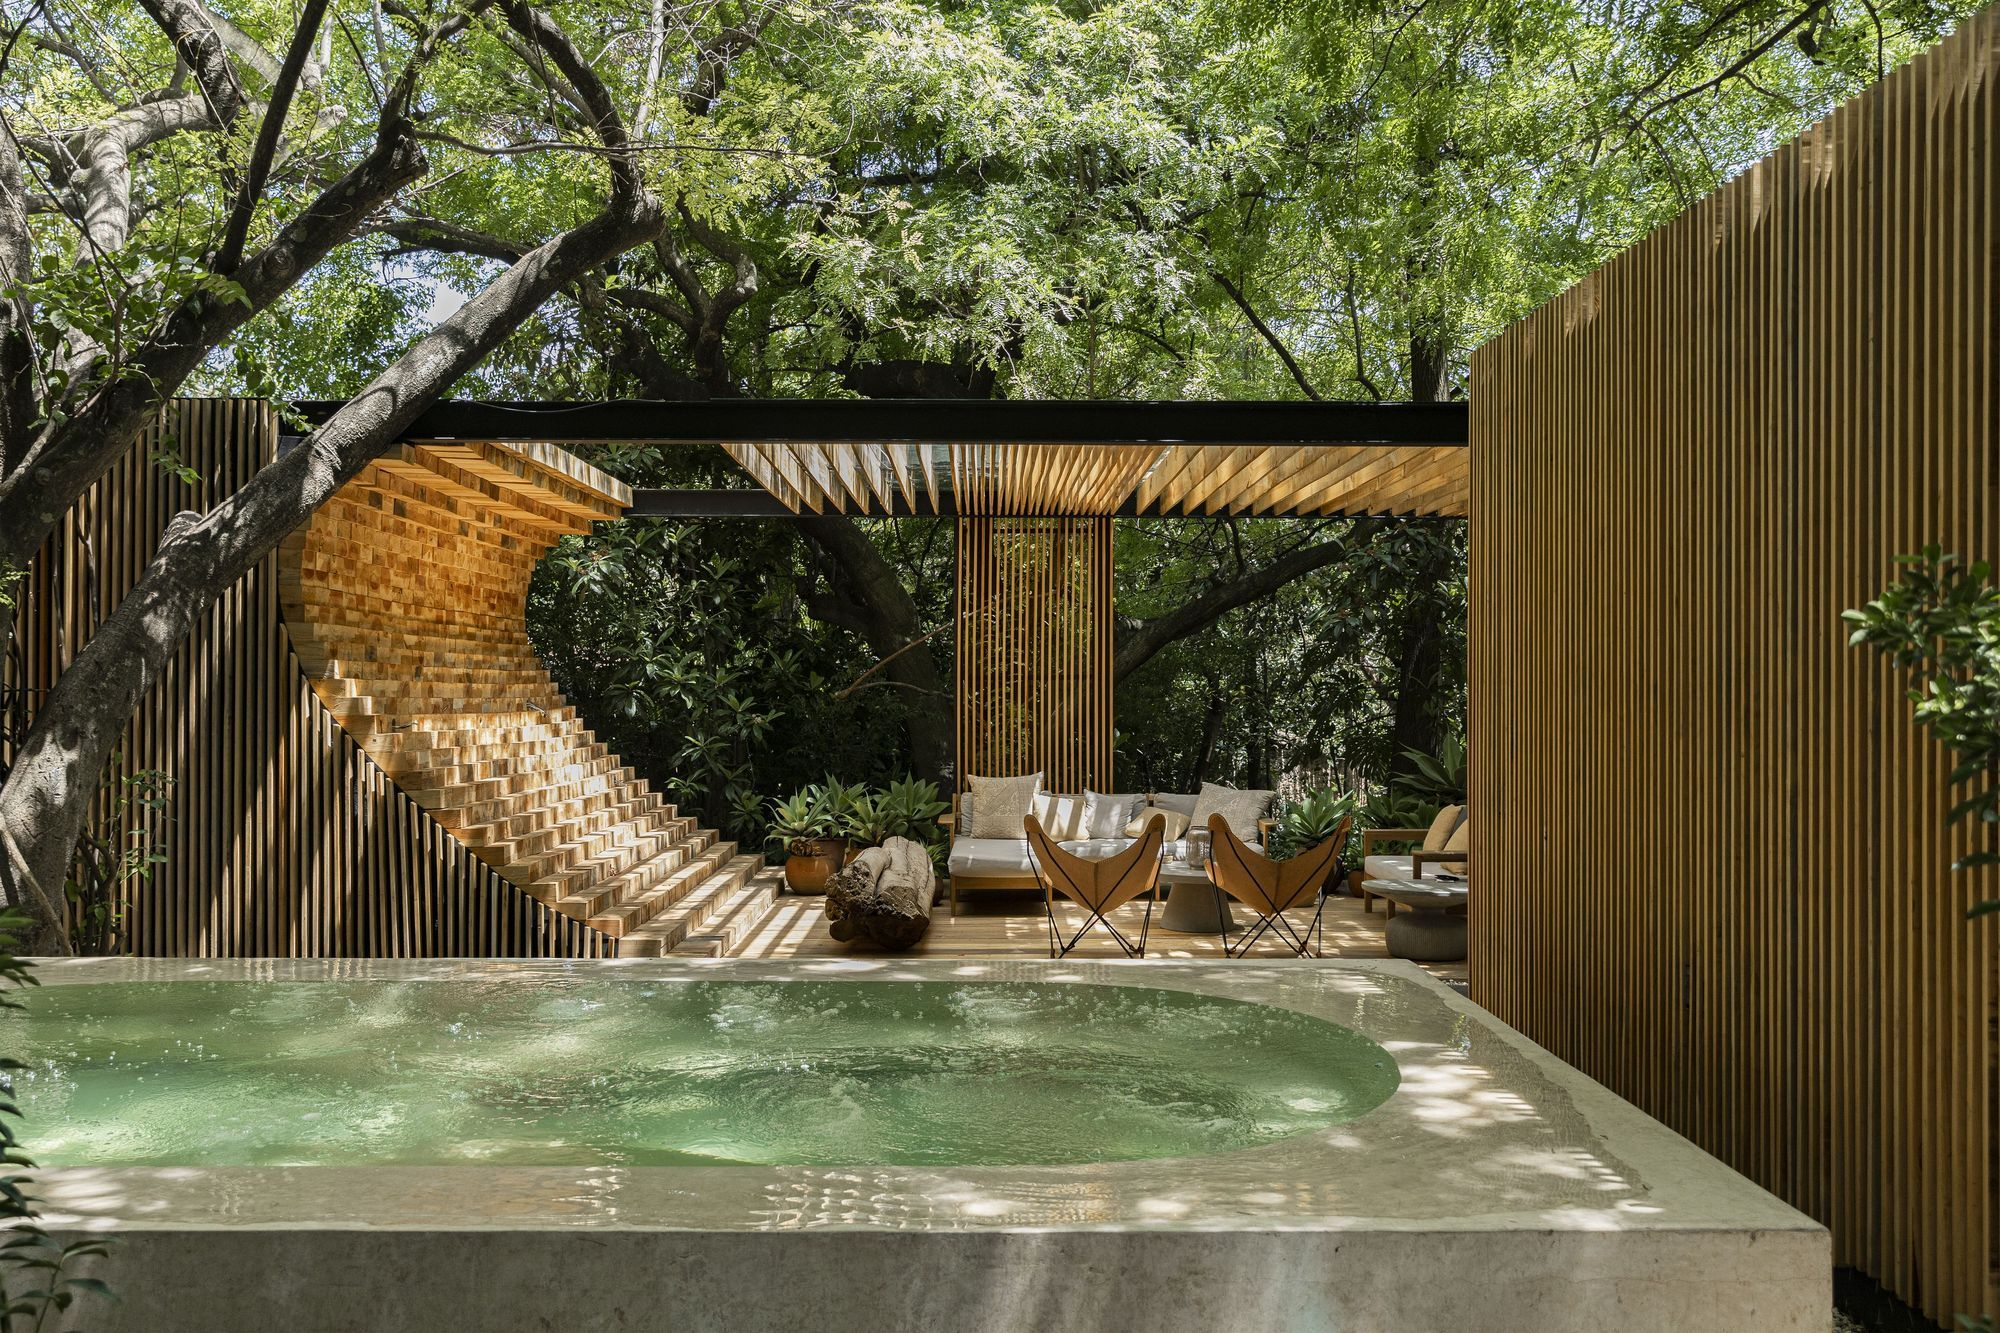 Making Waves: Private Poolhouse Design